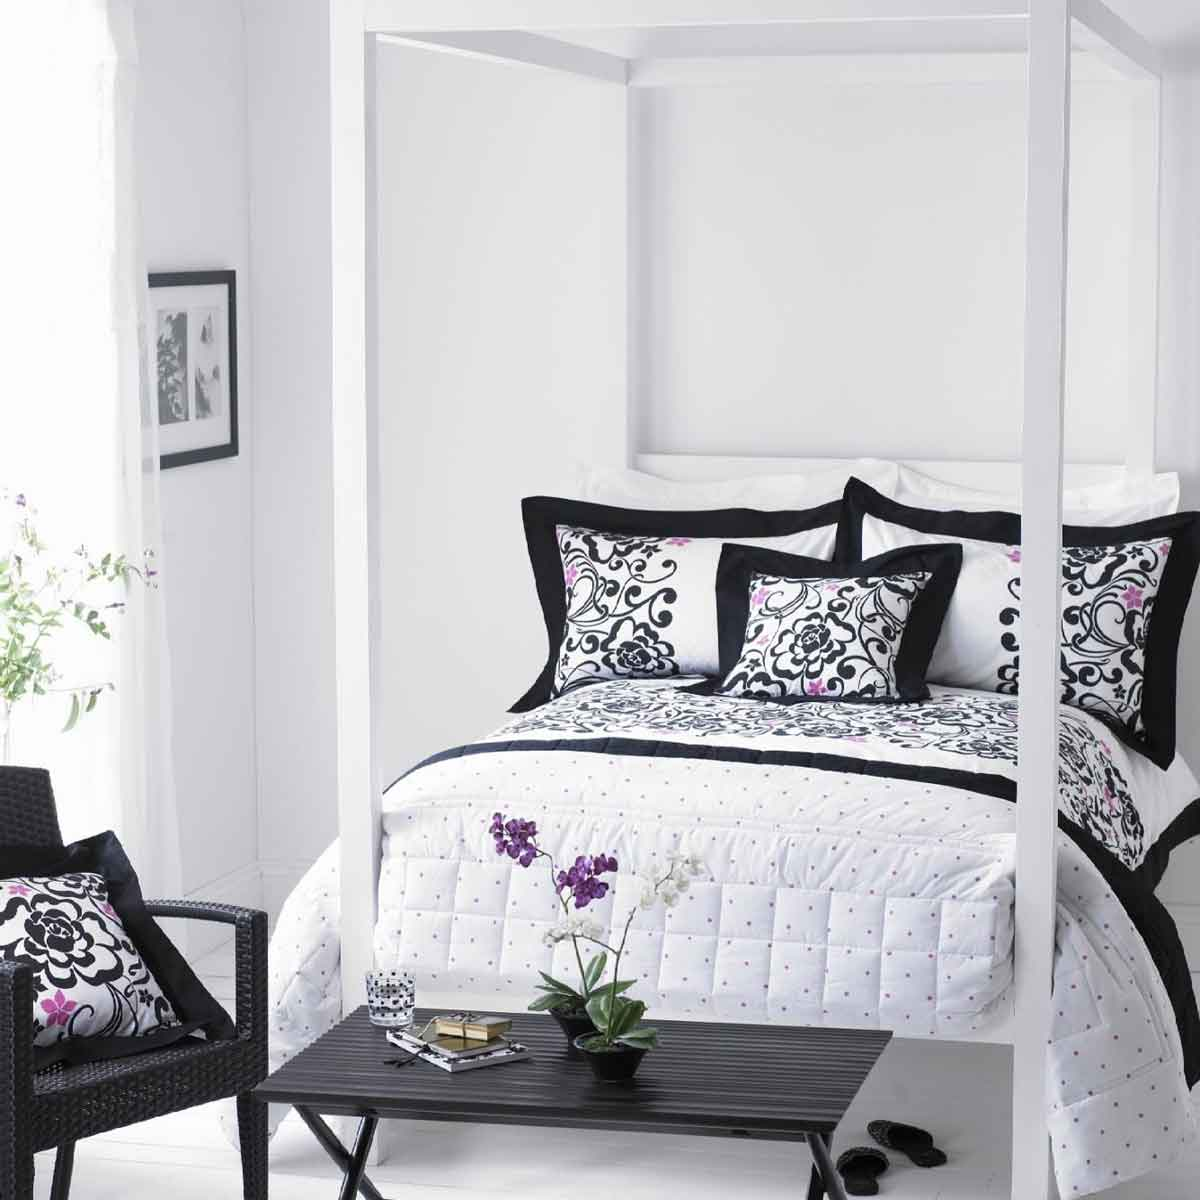 Black and white bedrooms designs home design inside for Design of decoration